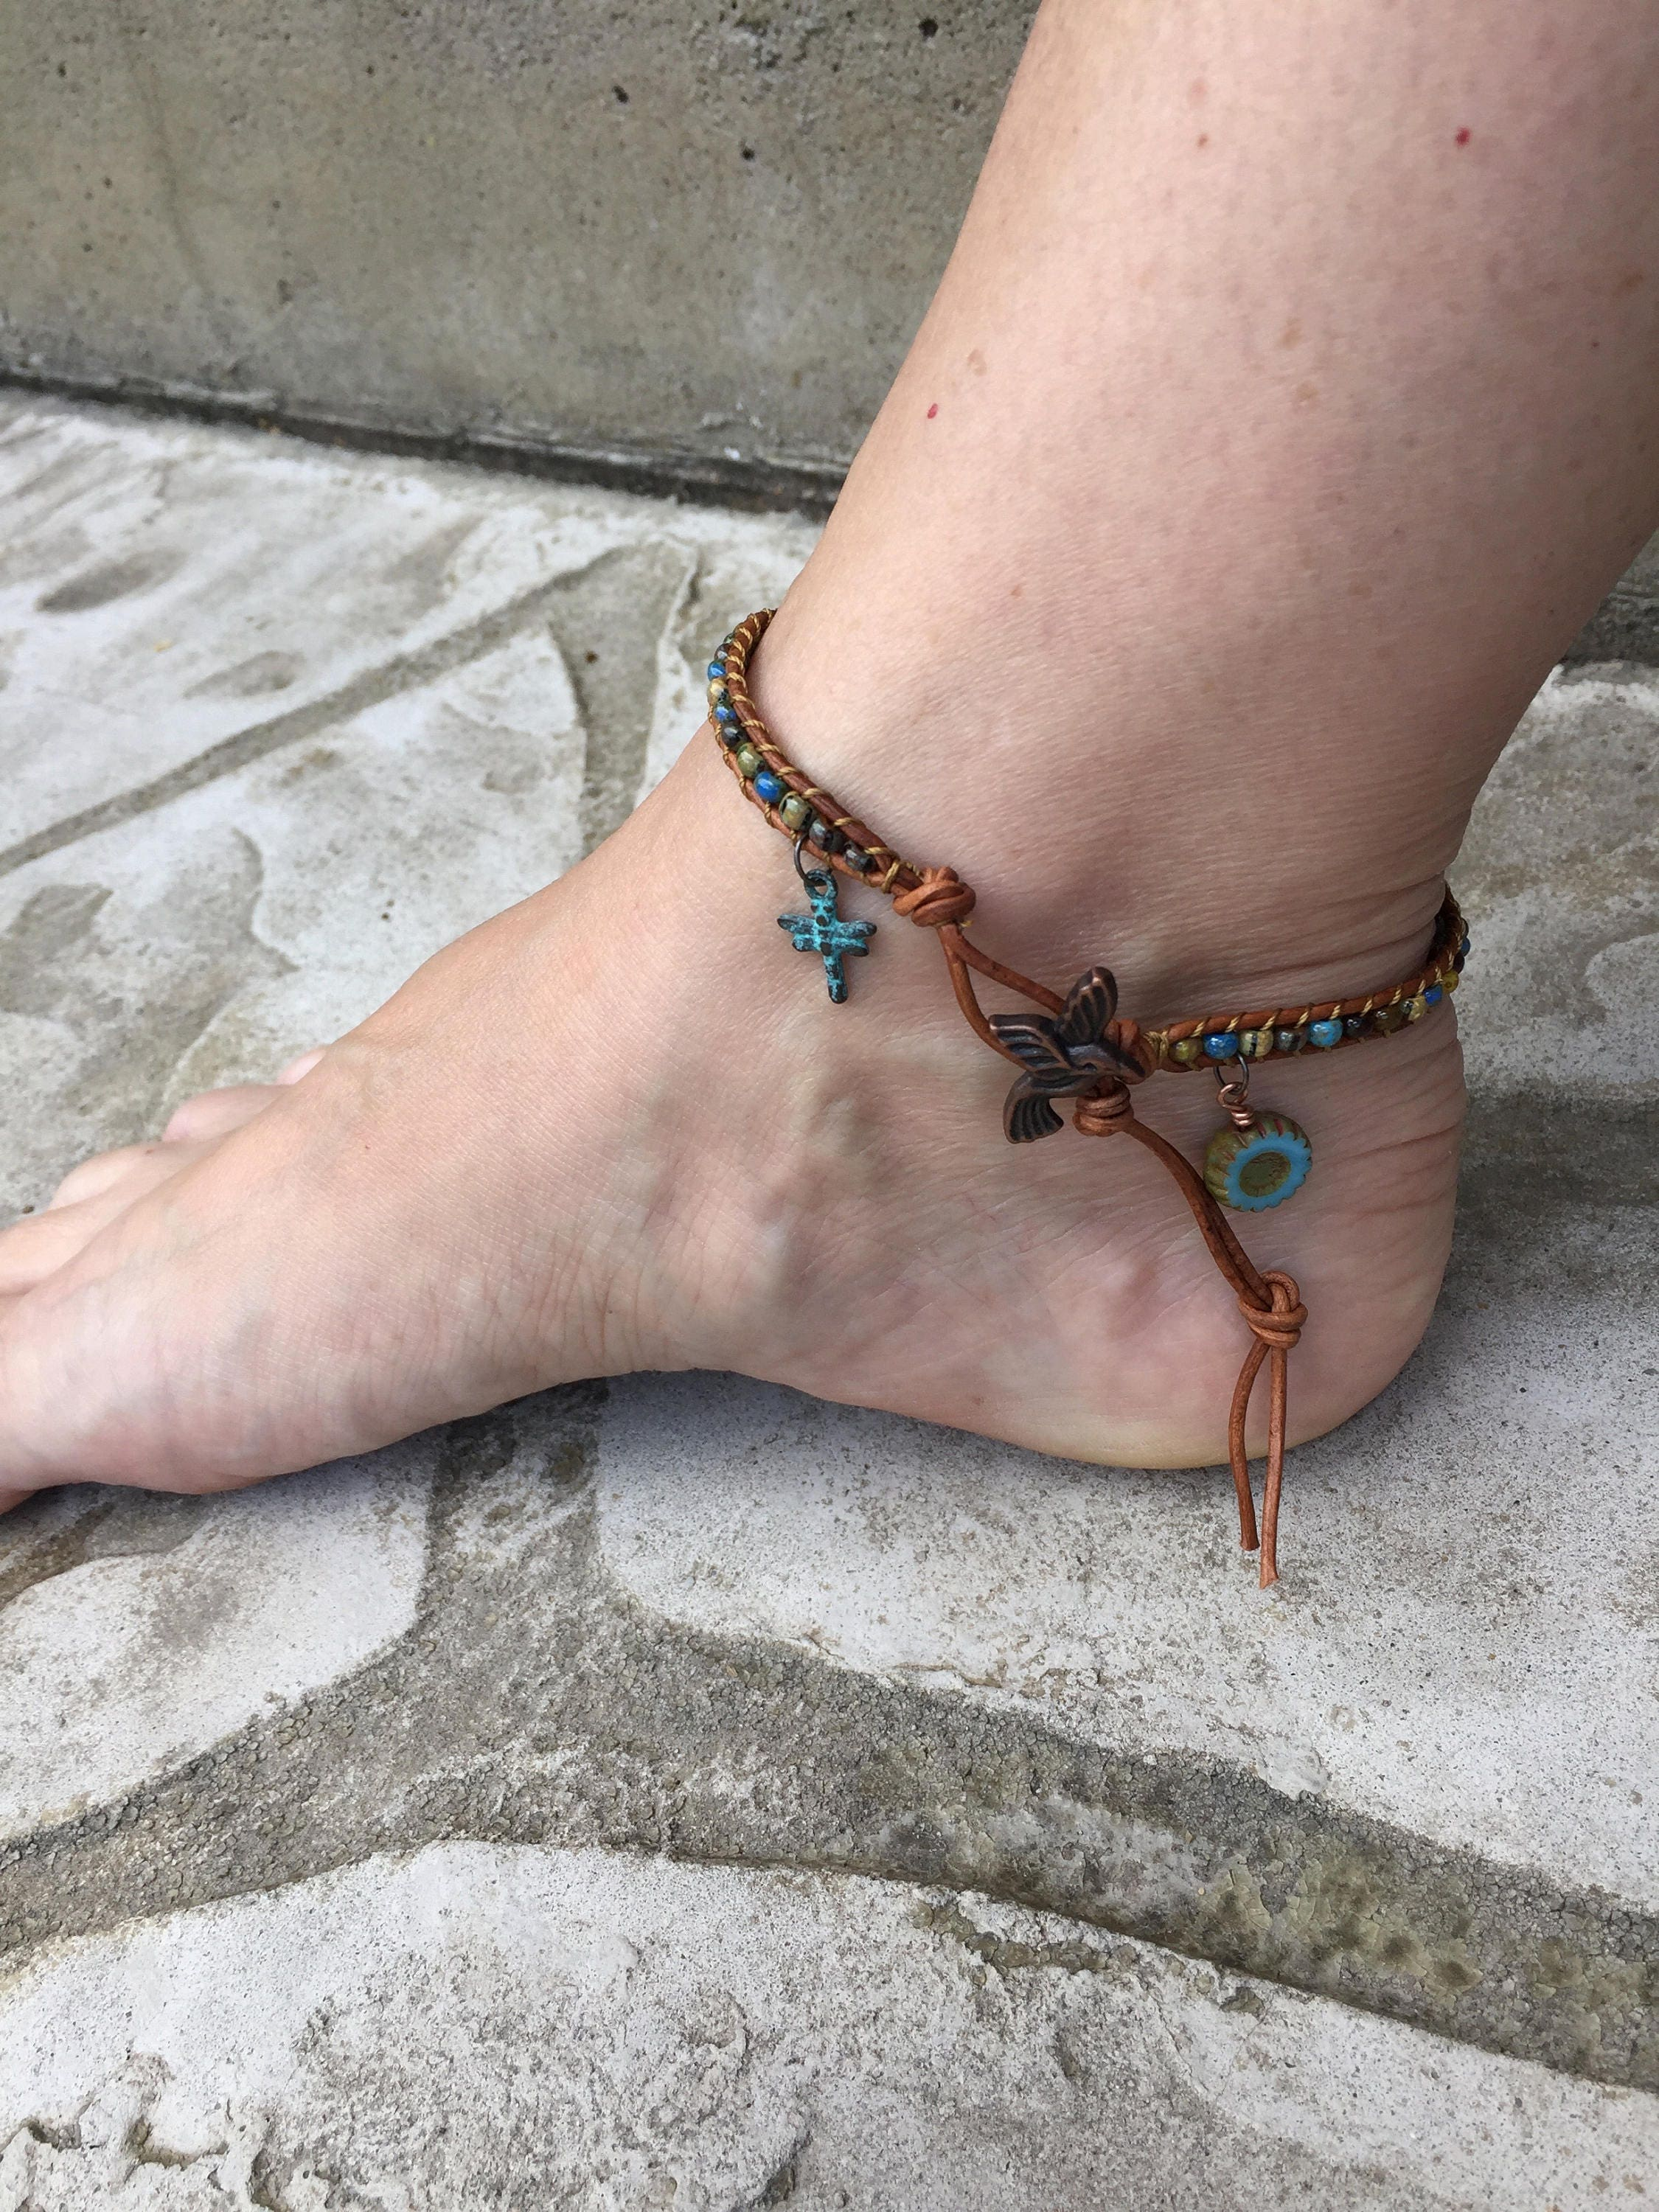 s favorite com listing etsy a bracelets my from ankle shop pin personal anklet leather